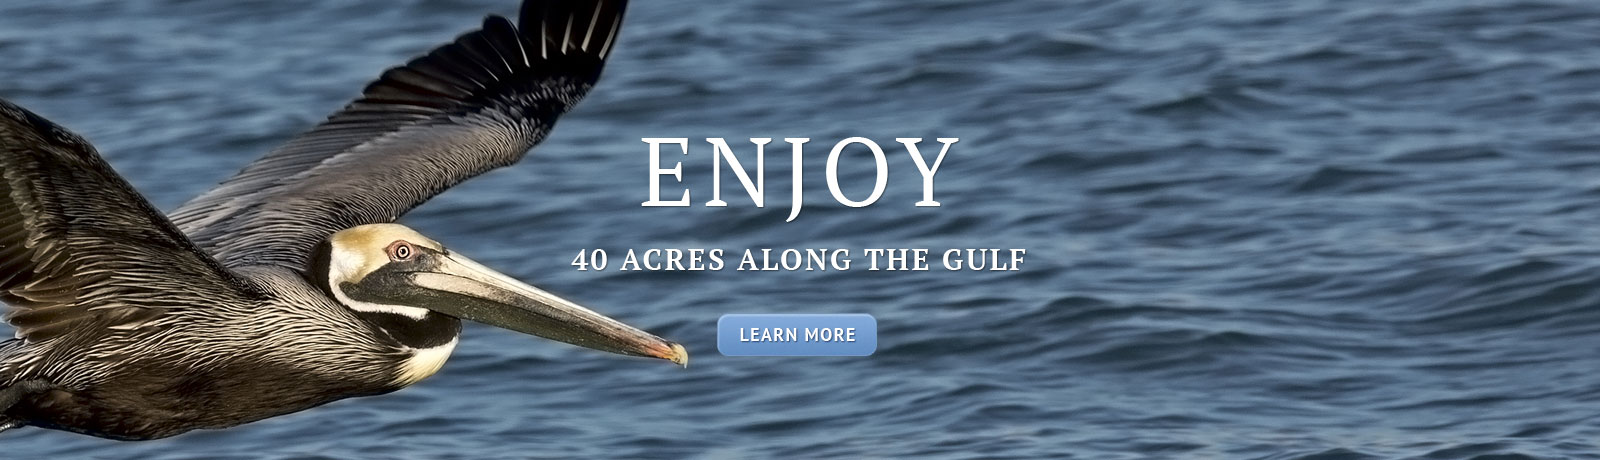 Enjoy 40 acres along the Gulf